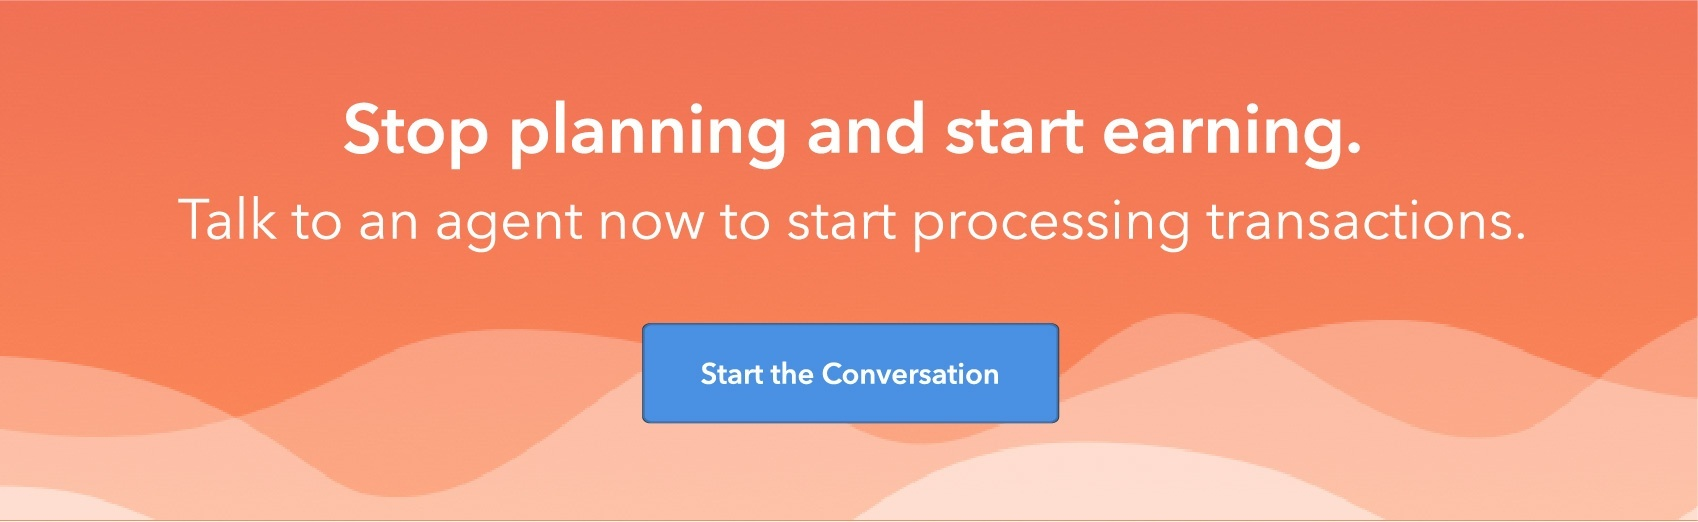 Stop planning and start earning. Talk to an agent now to start processing transactions. Start the Conversation.